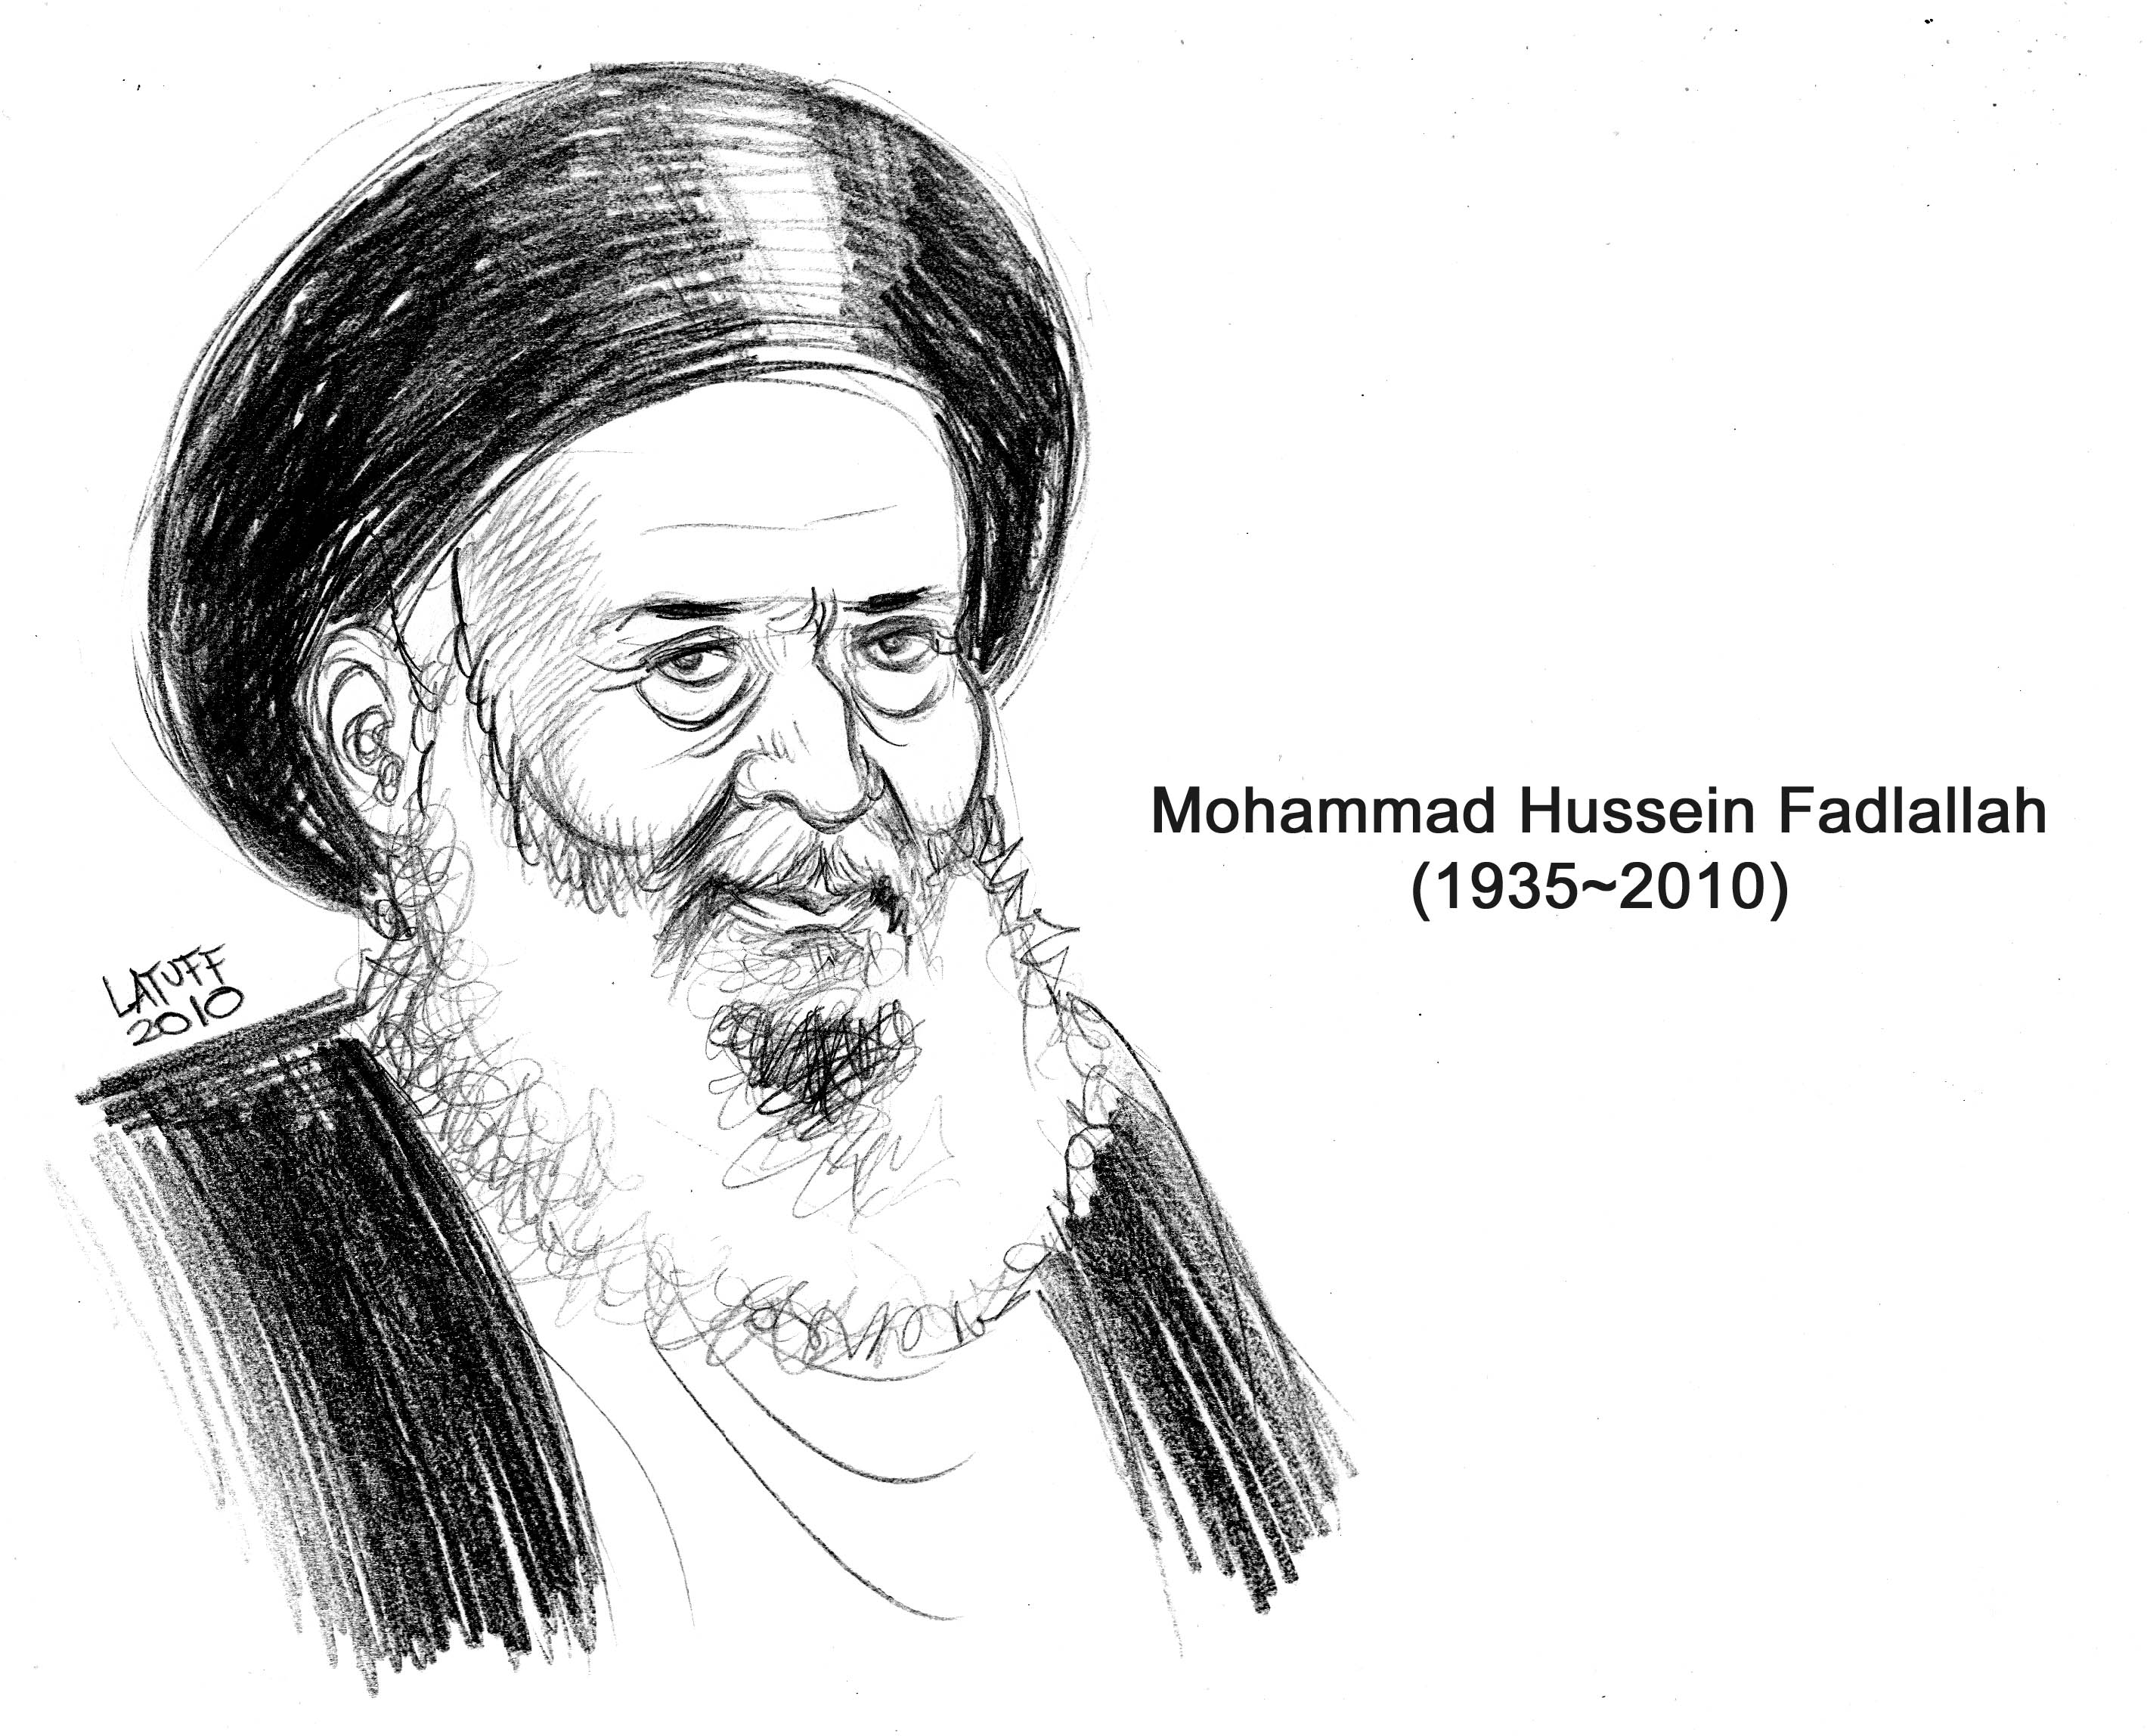 In Memory of Mohammad Hussein Fadlallah, 1935-2010